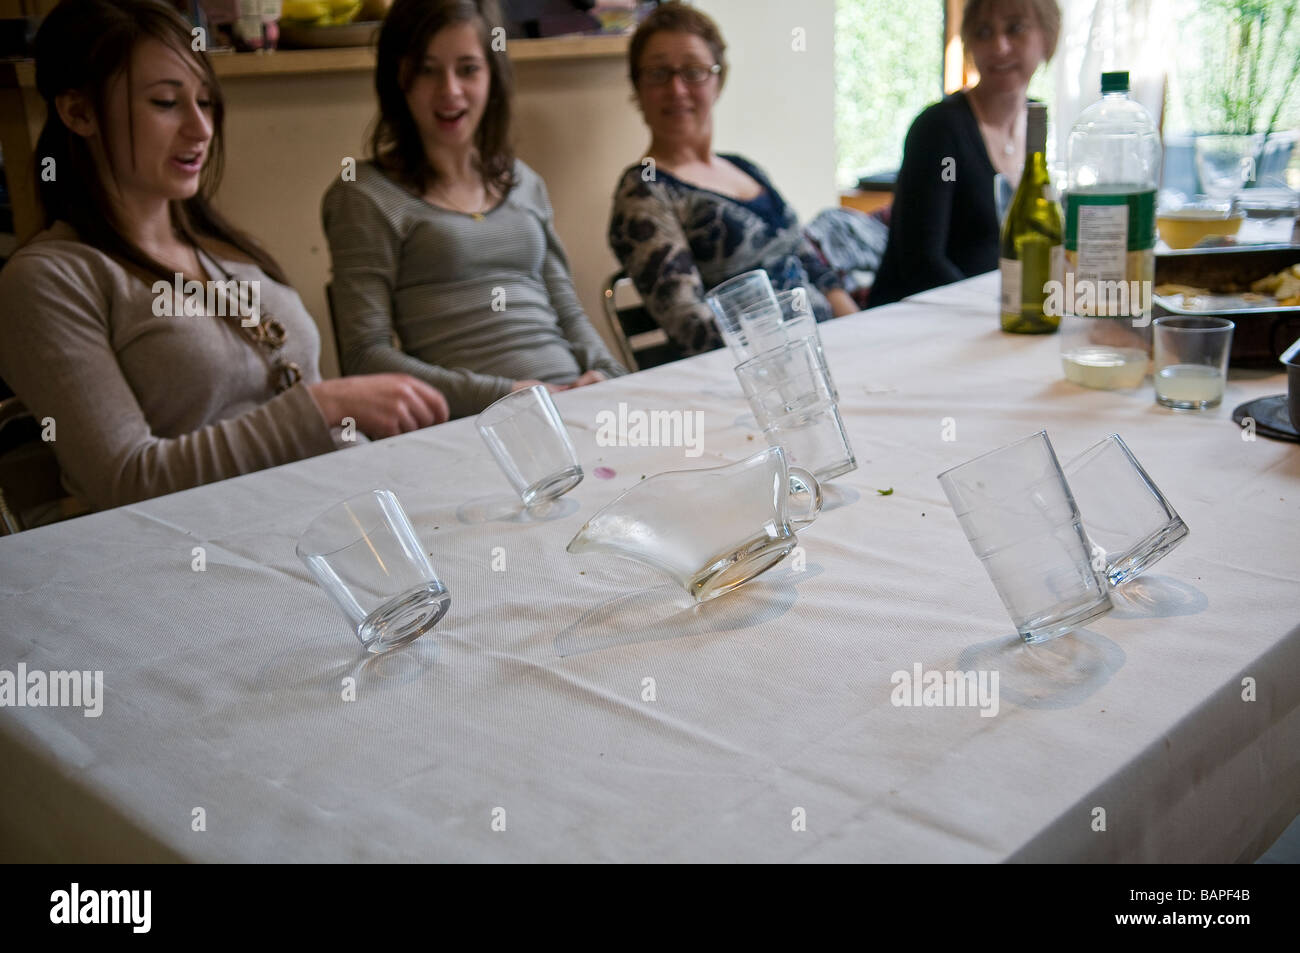 Poltergeist activity causes glasses to tip over during family meal - Stock Image